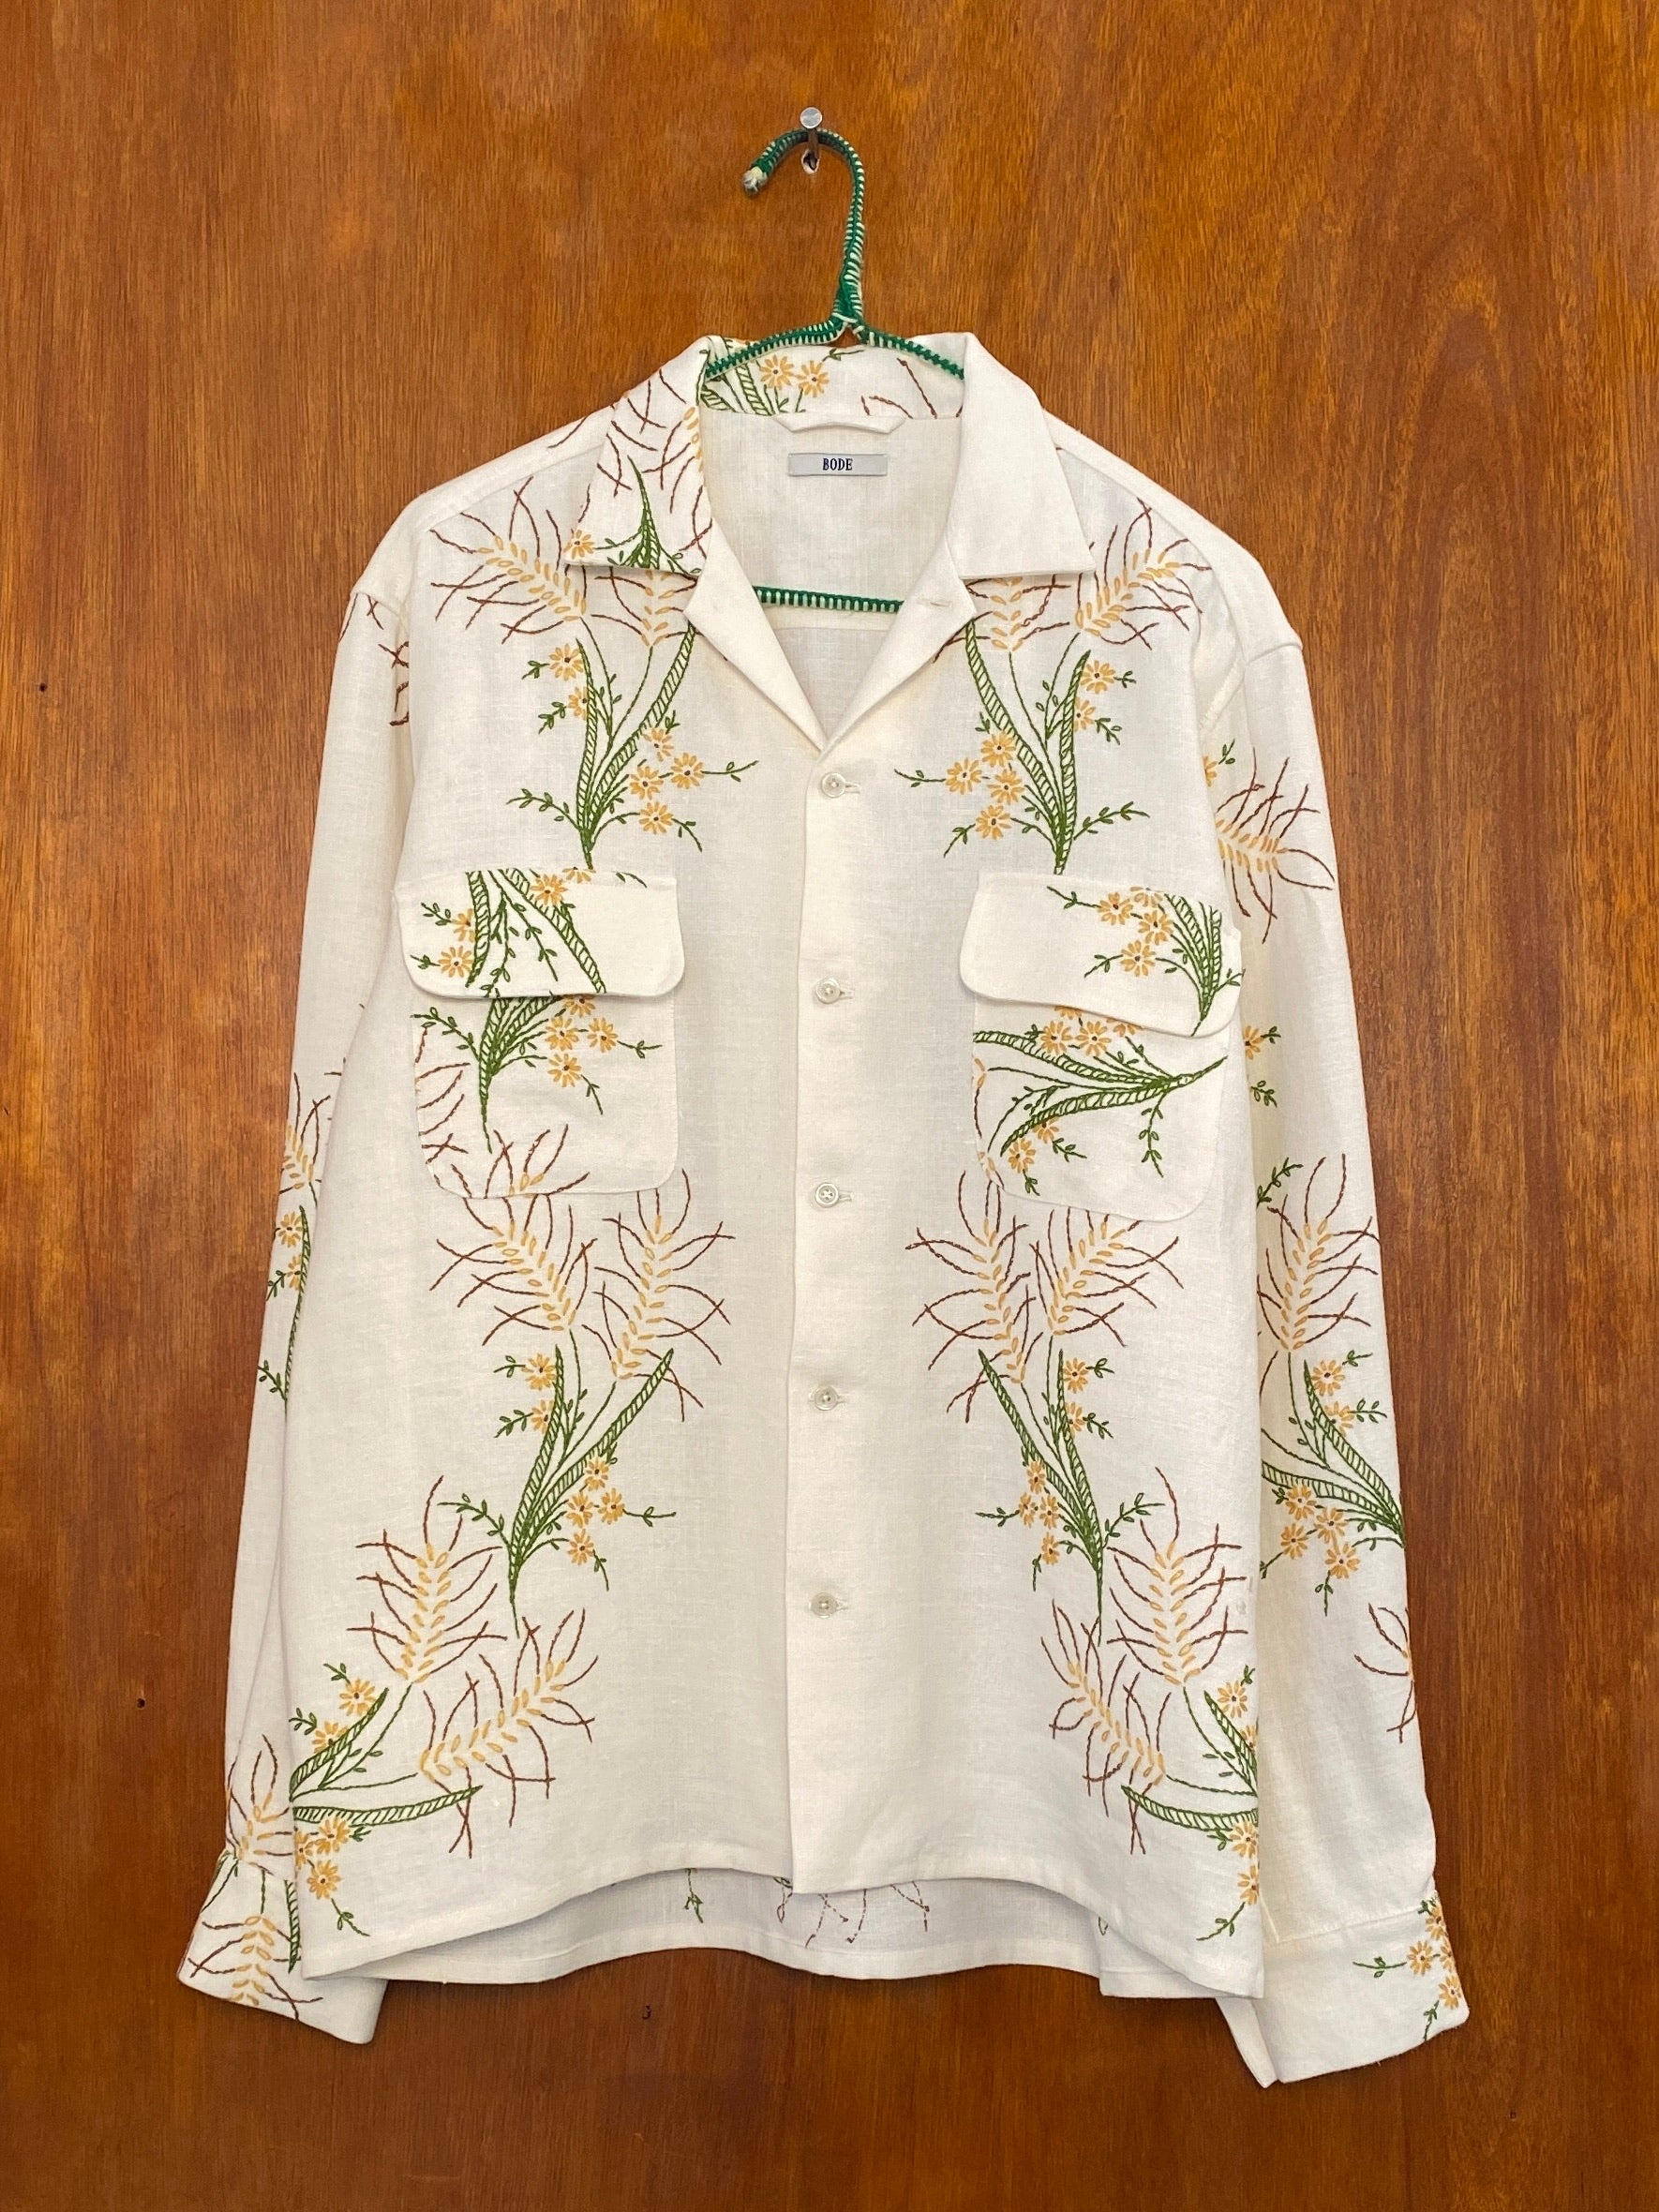 Moss Daisy Embroidery Shirt - M/L